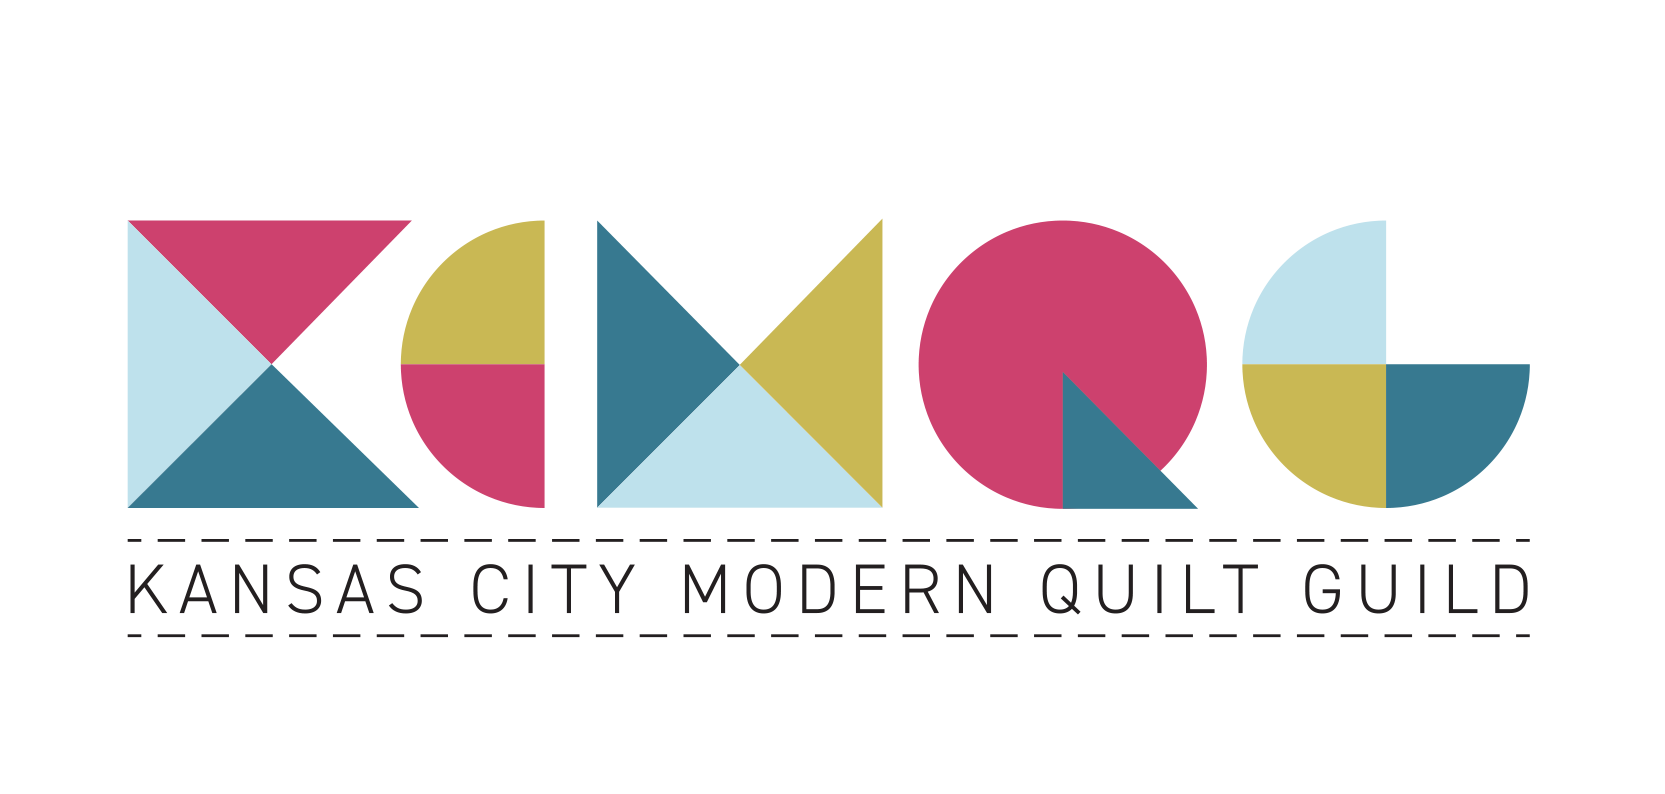 Kansas City Modern Quilt Guild